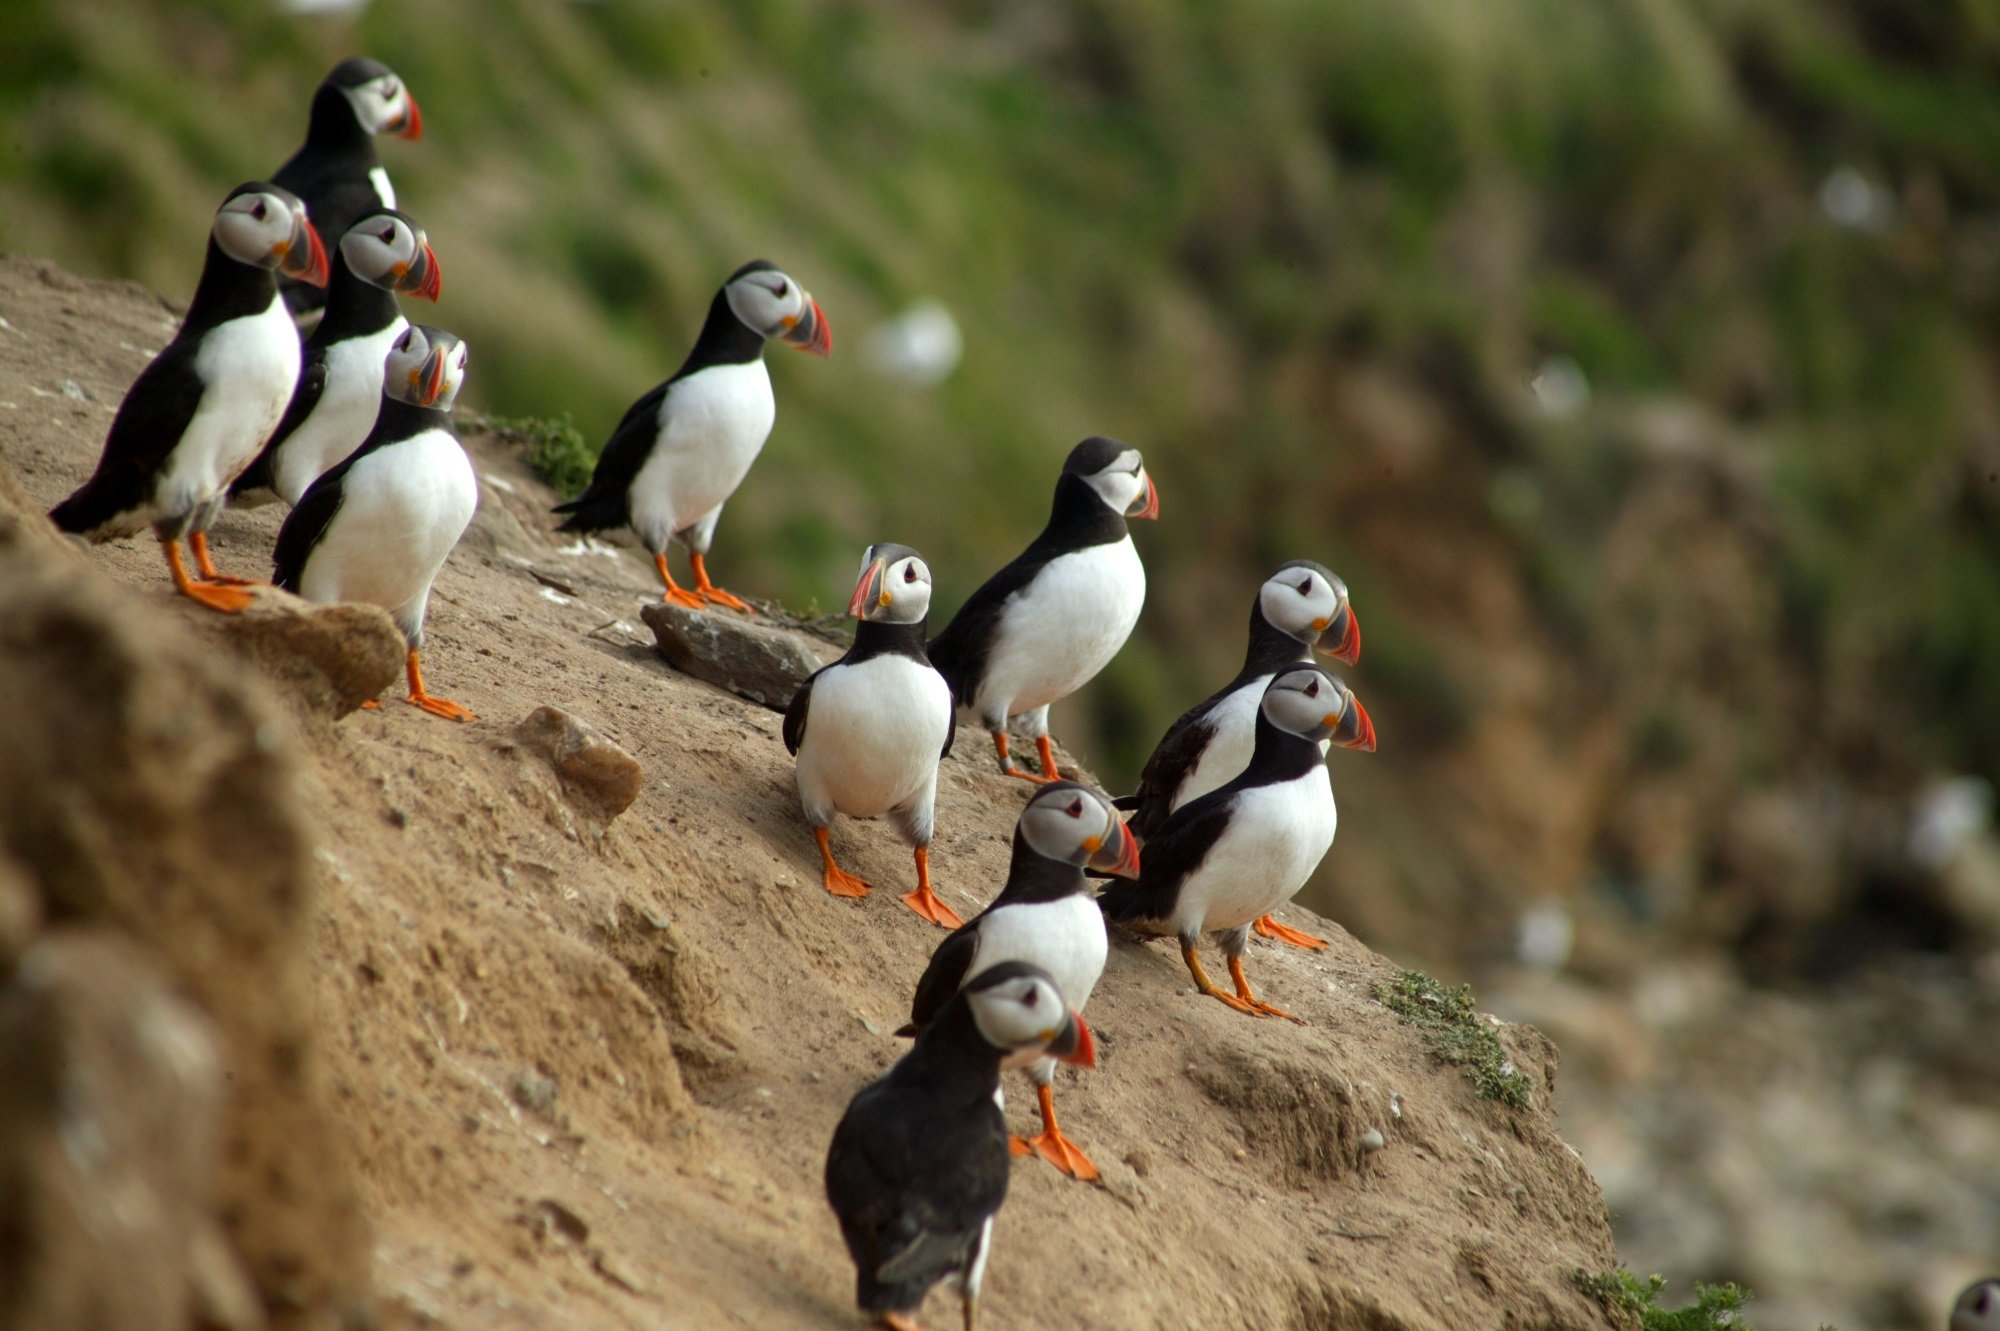 using gps tracking to conserve puffins zoological society of